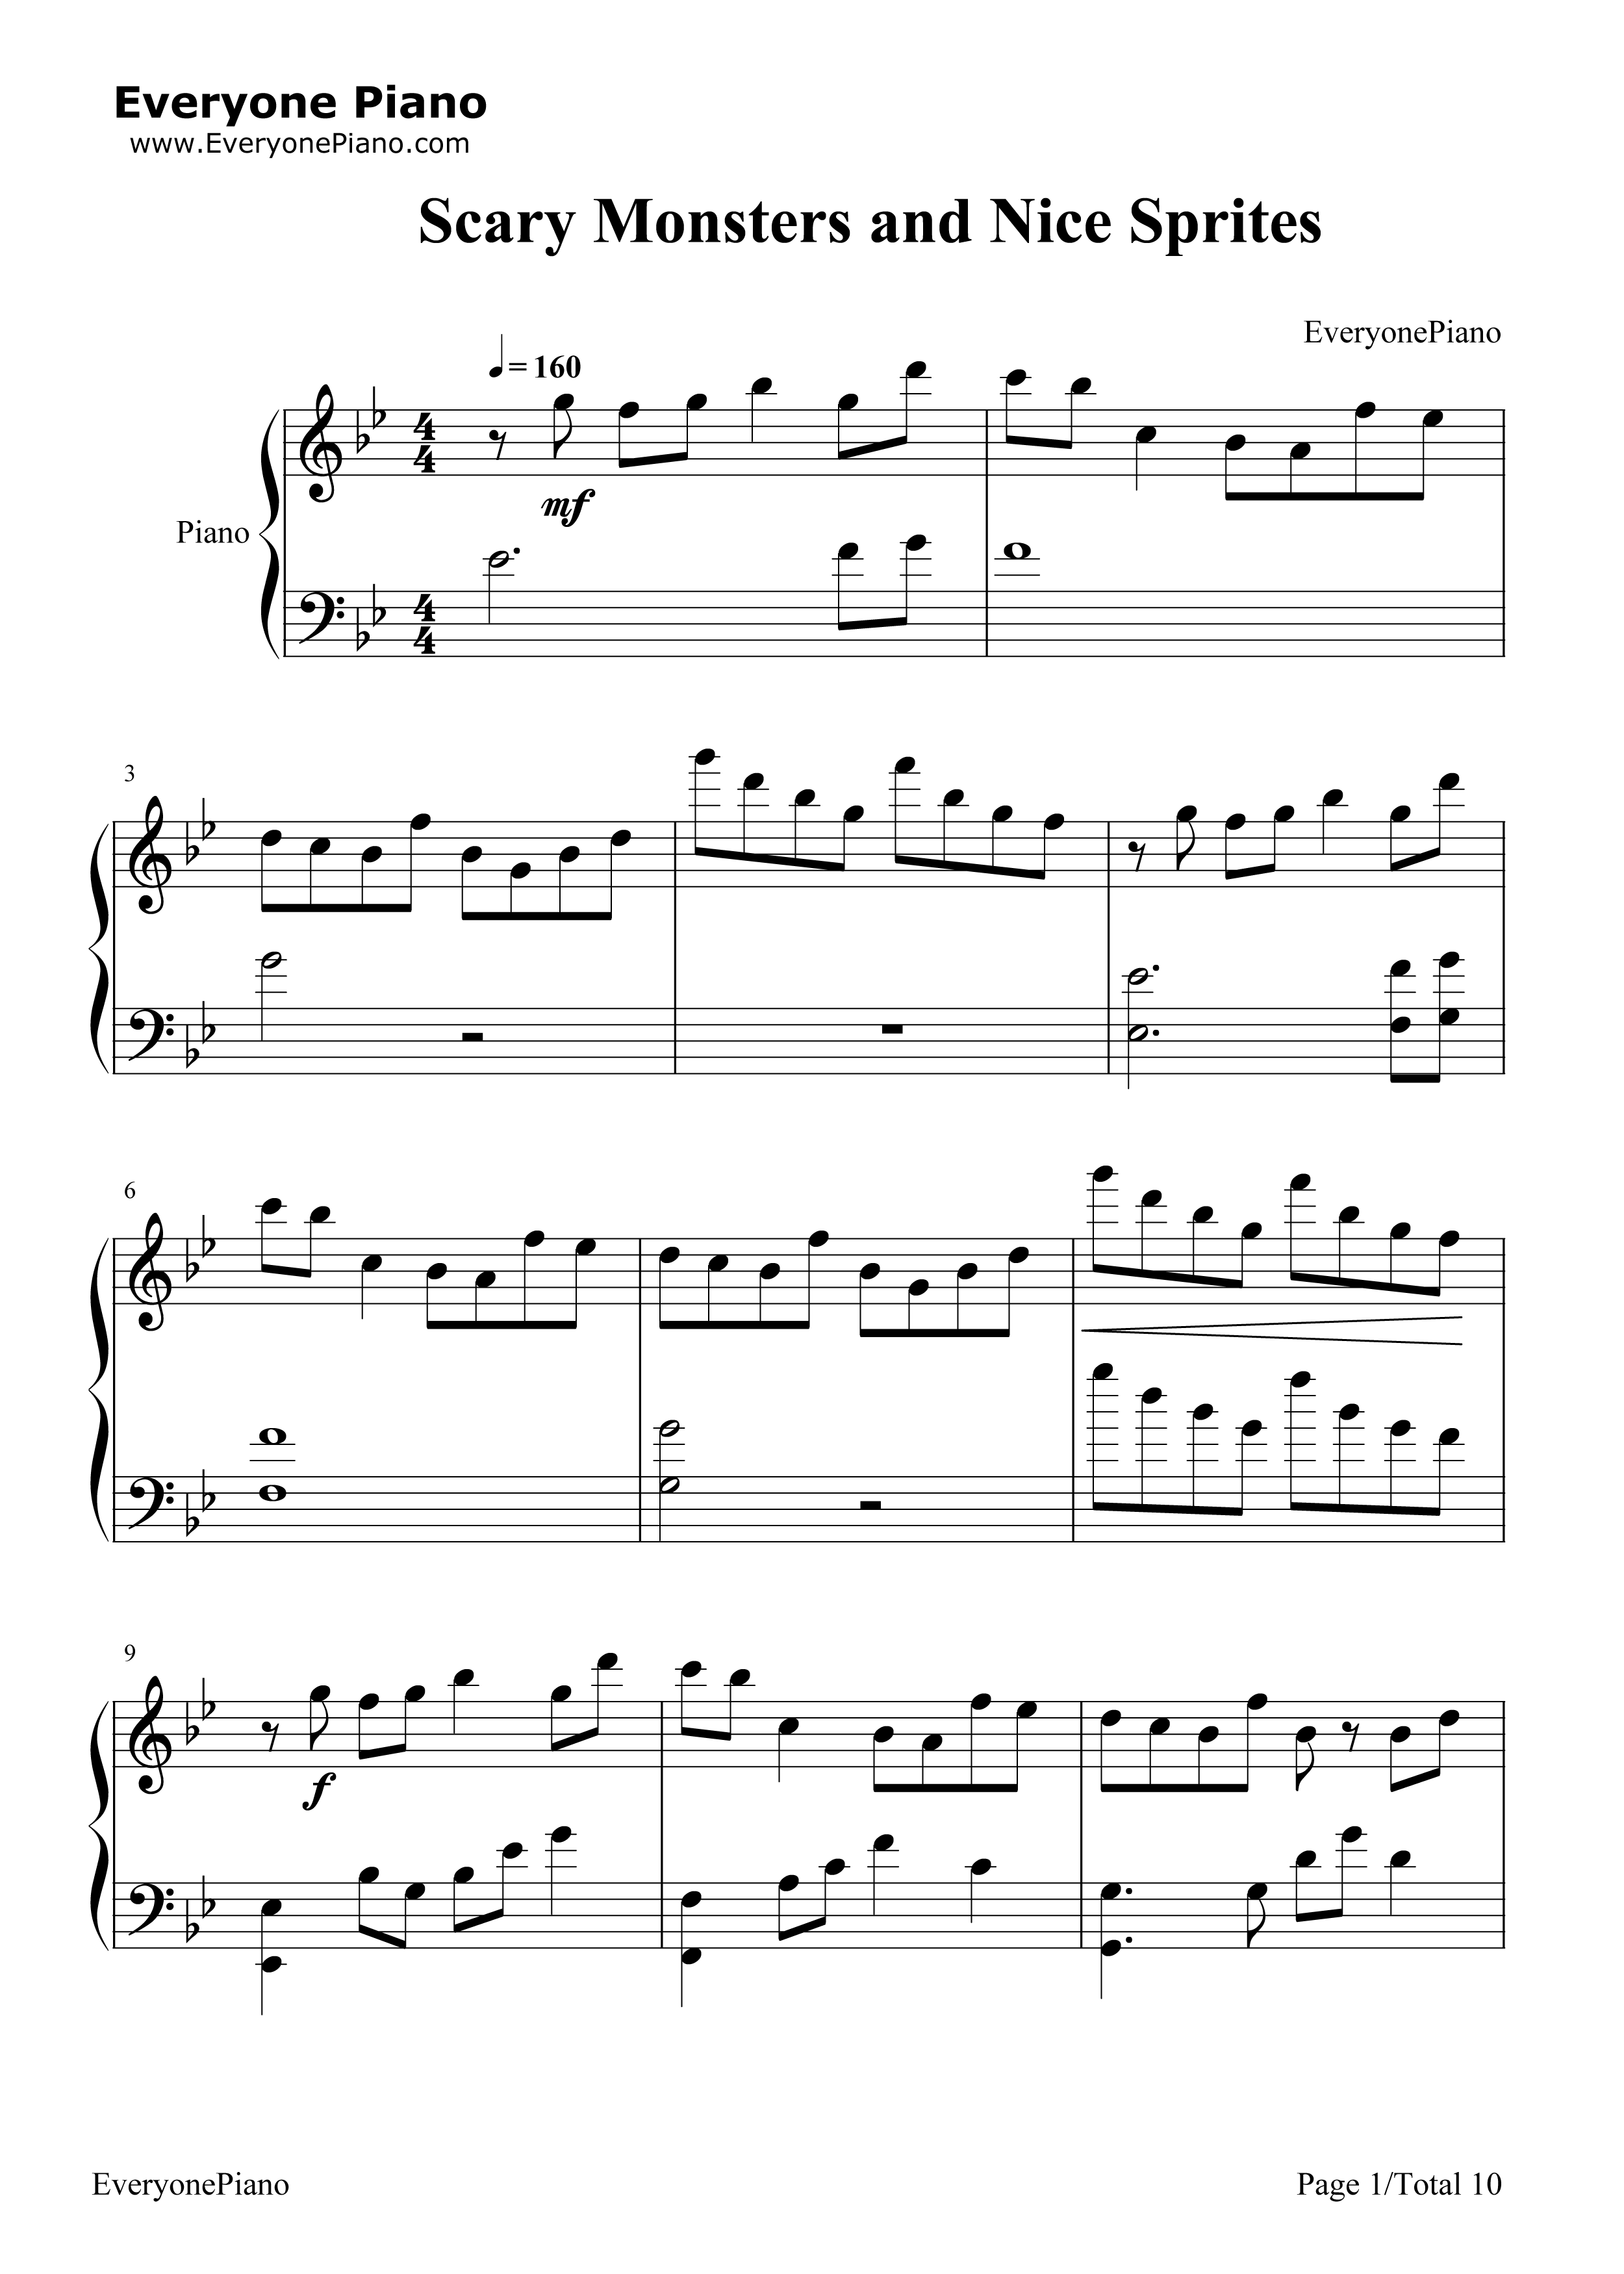 Scary Monsters and Nice Sprites-Skrillex Stave Preview 1-Free Piano Sheet Music u0026 Piano Chords